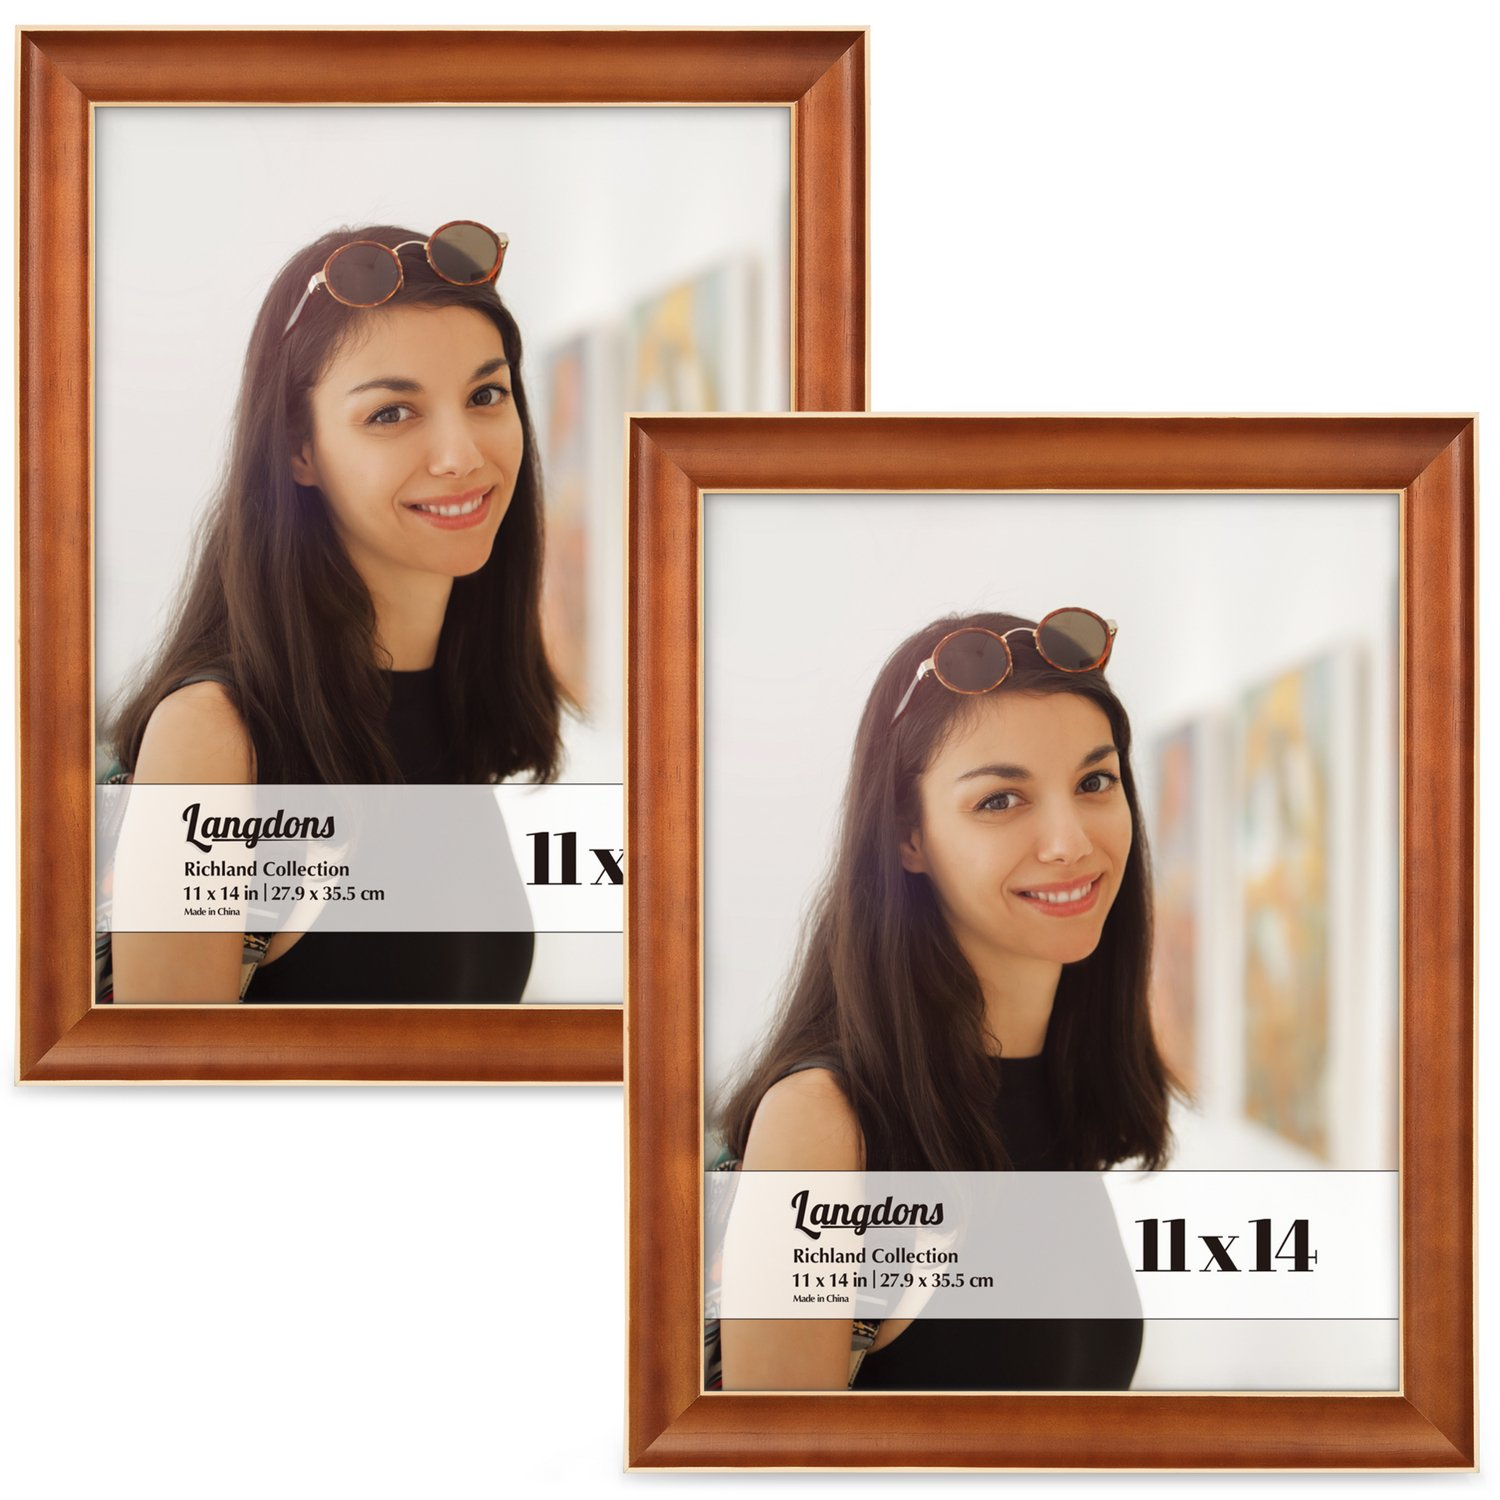 Langdons 11x14 Picture Frame Set (2-Pack, Honey Brown) Solid Wood Photo Picture Frames 11x14, Wall Mount or Table Top, Display Large Picture Frame 11x14 Vertically or 14x11 Horizontal, Richland Series